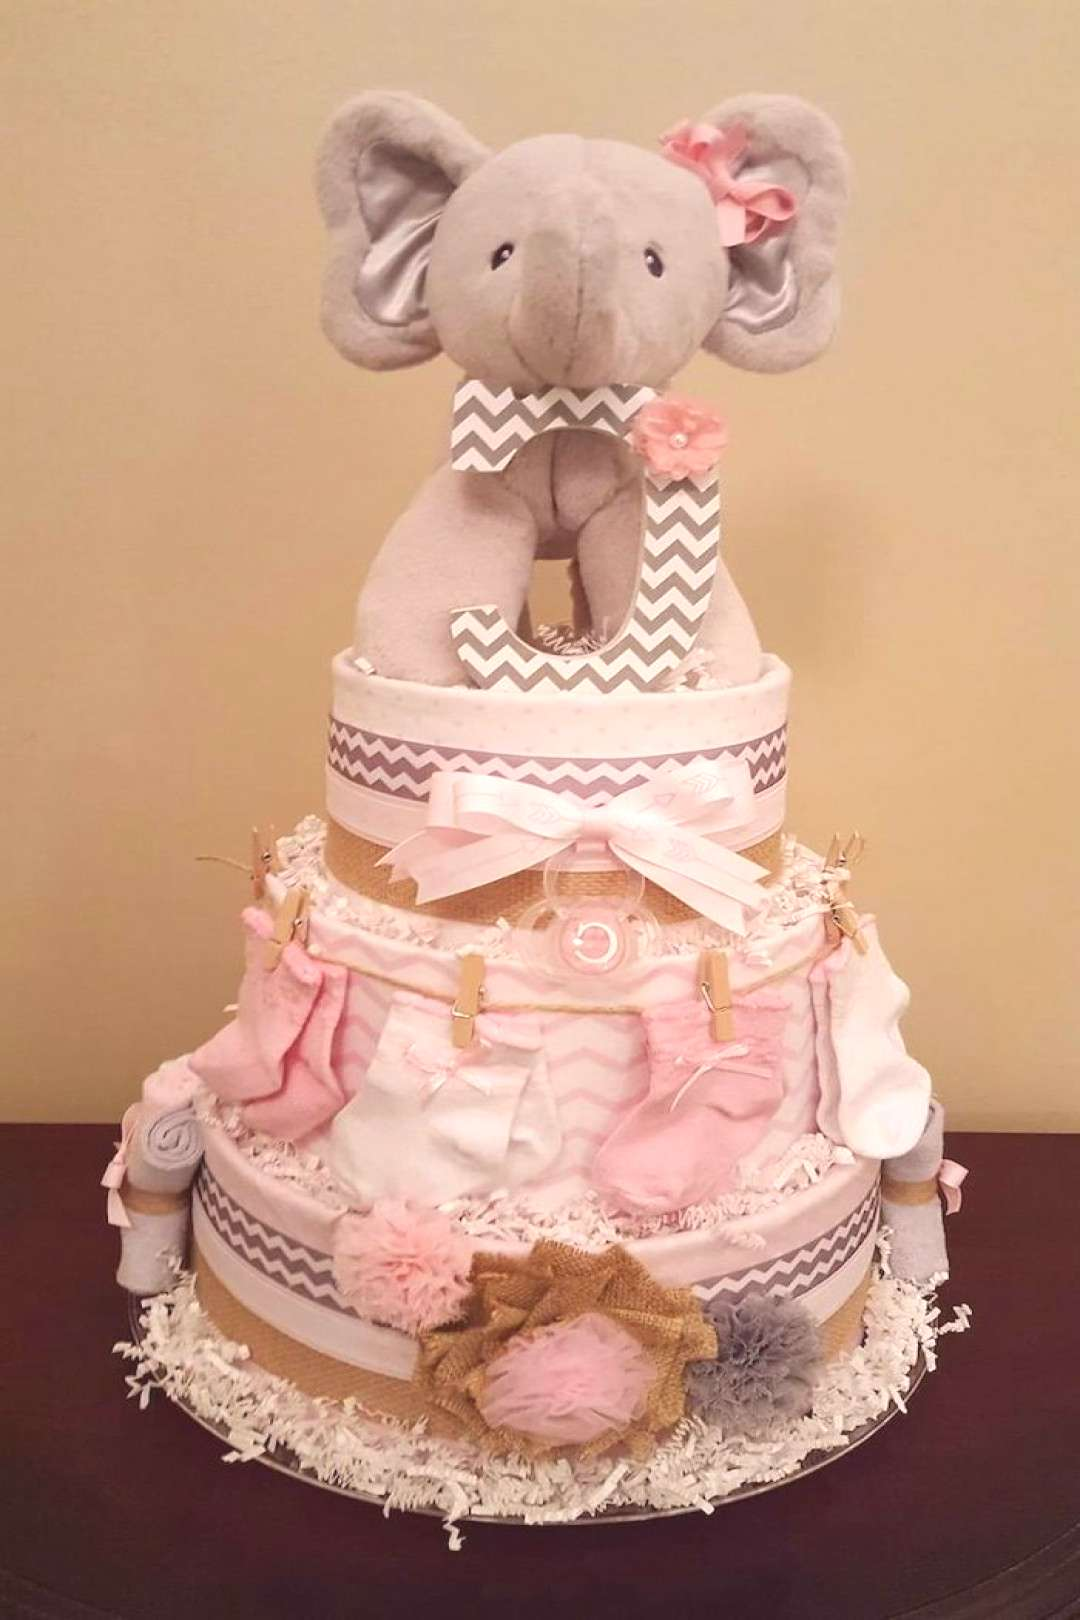 ▷1001 + Ideas for Baby Shower Cakes for Boys and Girls#baby